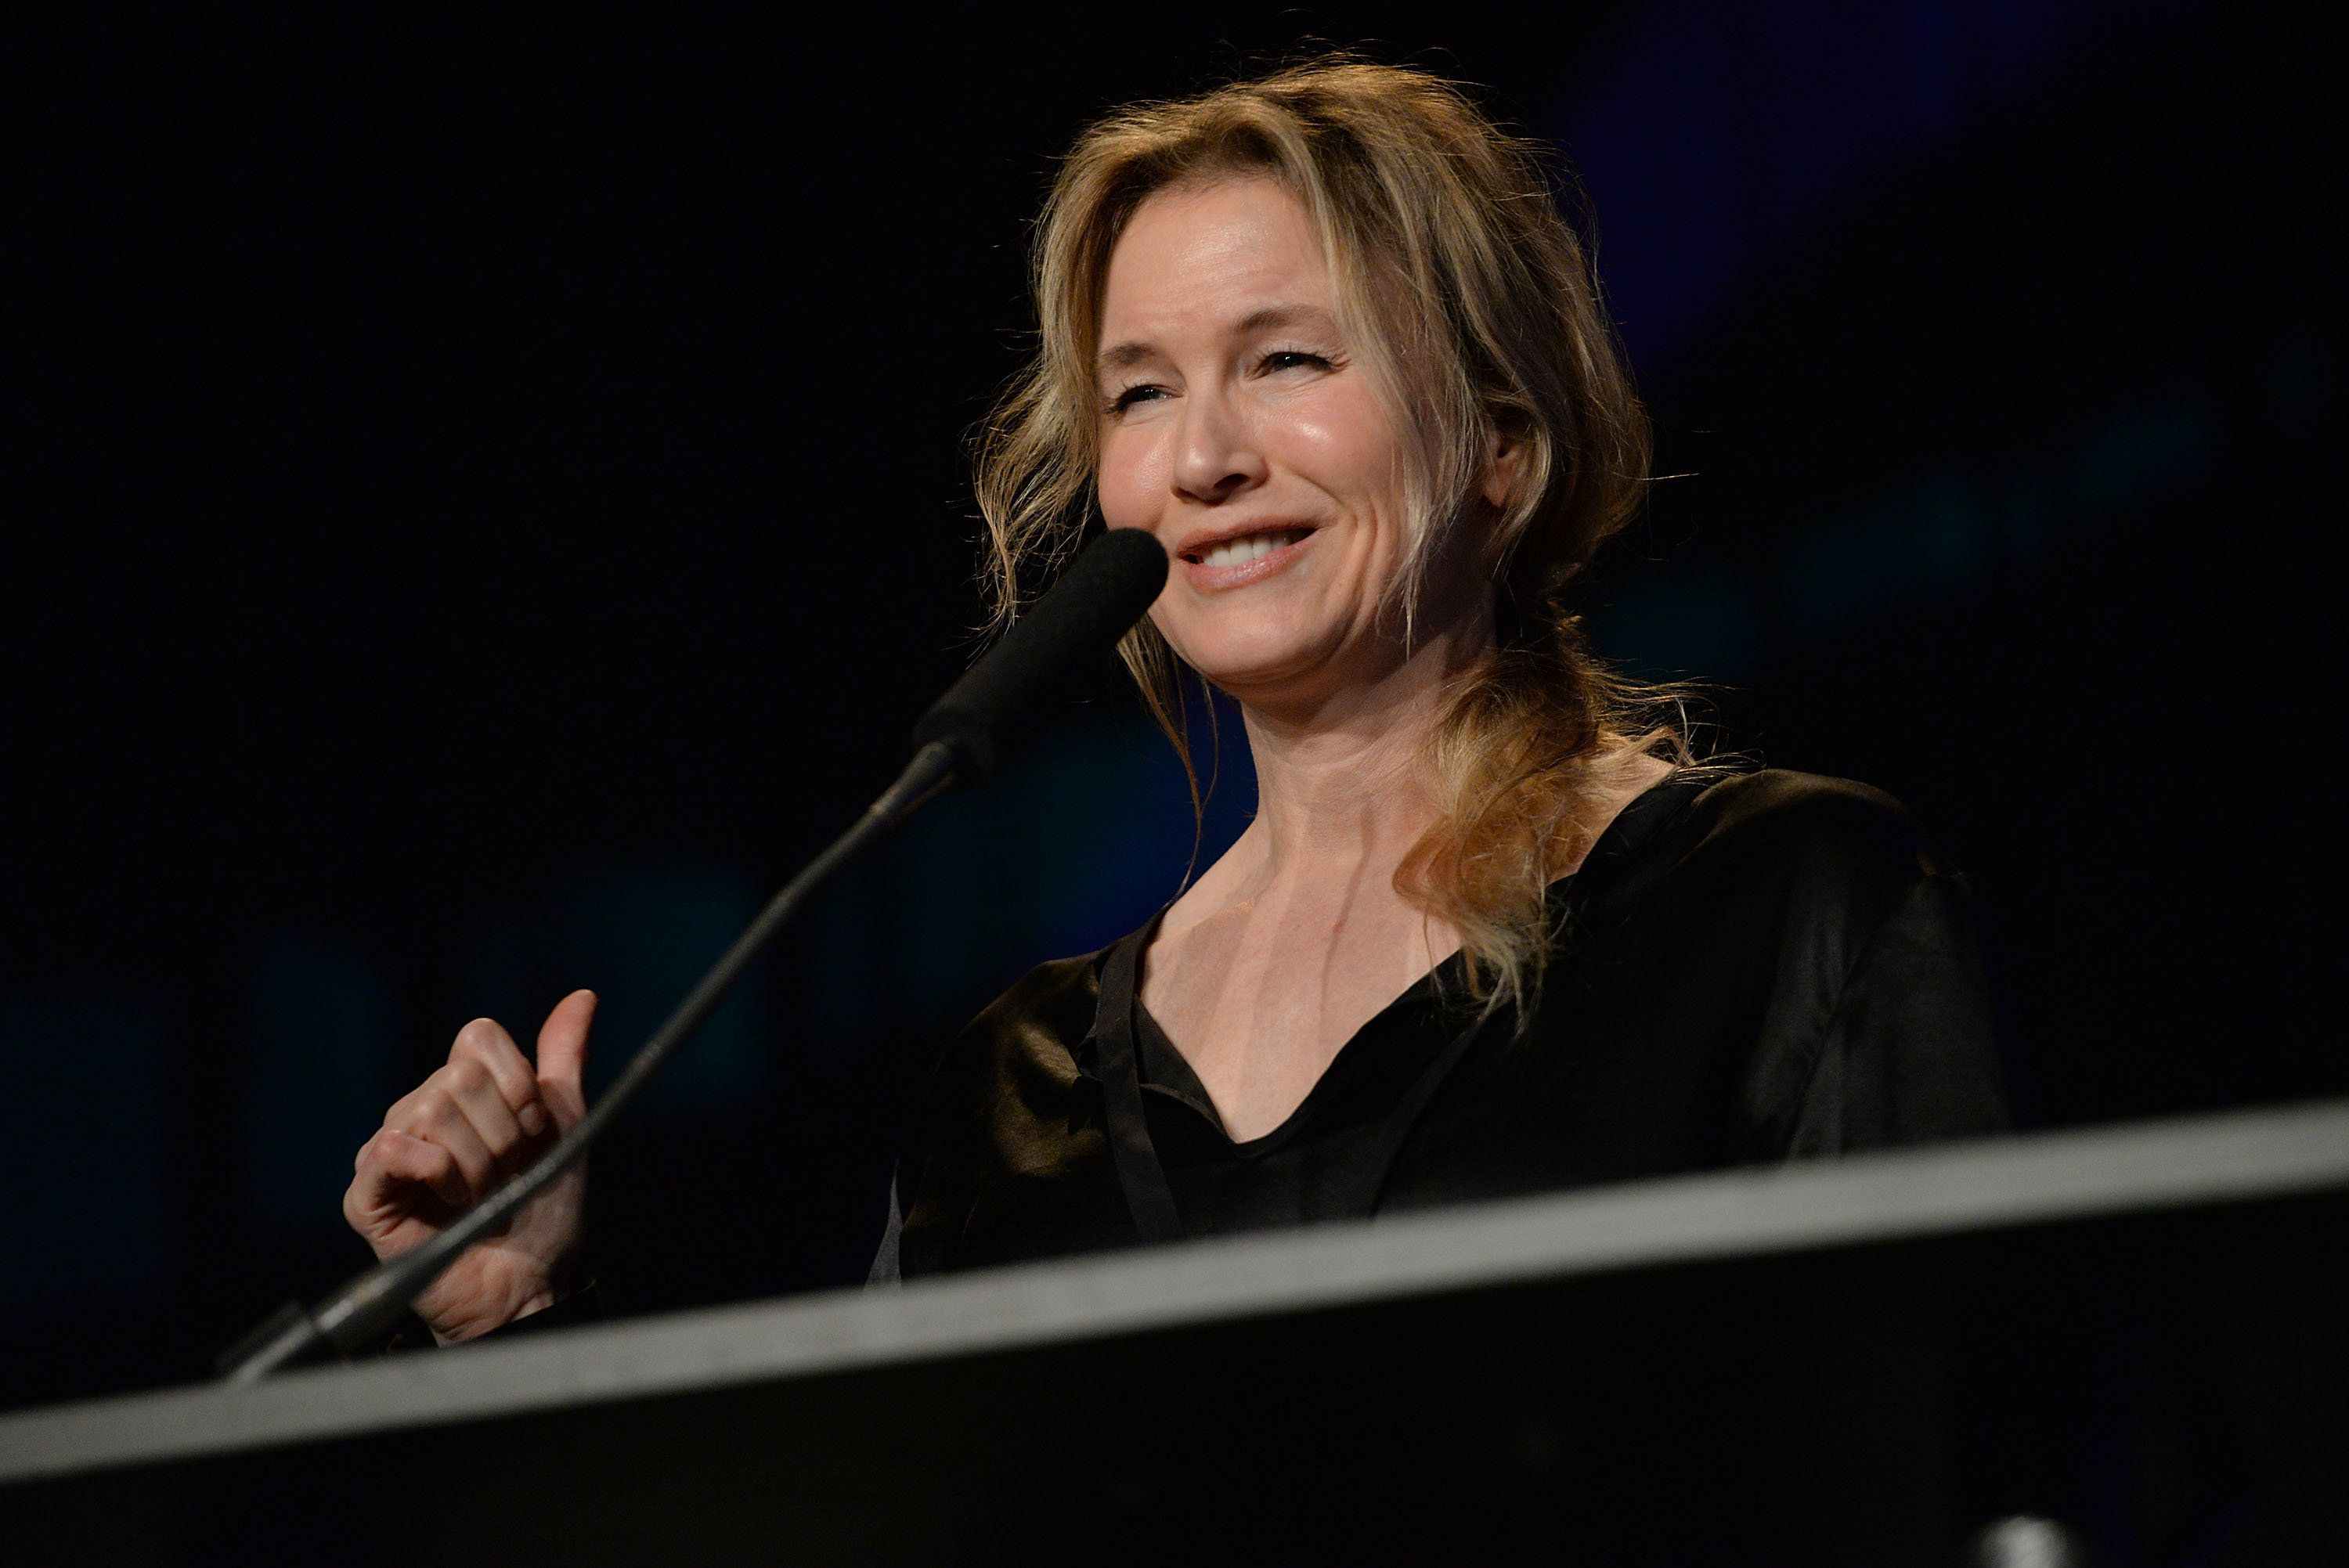 AUSTIN, TX - MARCH 16:  Actress Renee Zellweger presents onstage at the Austin Music Awards on March 16, 2016 in Austin, Texas.  (Photo by Scott Dudelson/Getty Images)